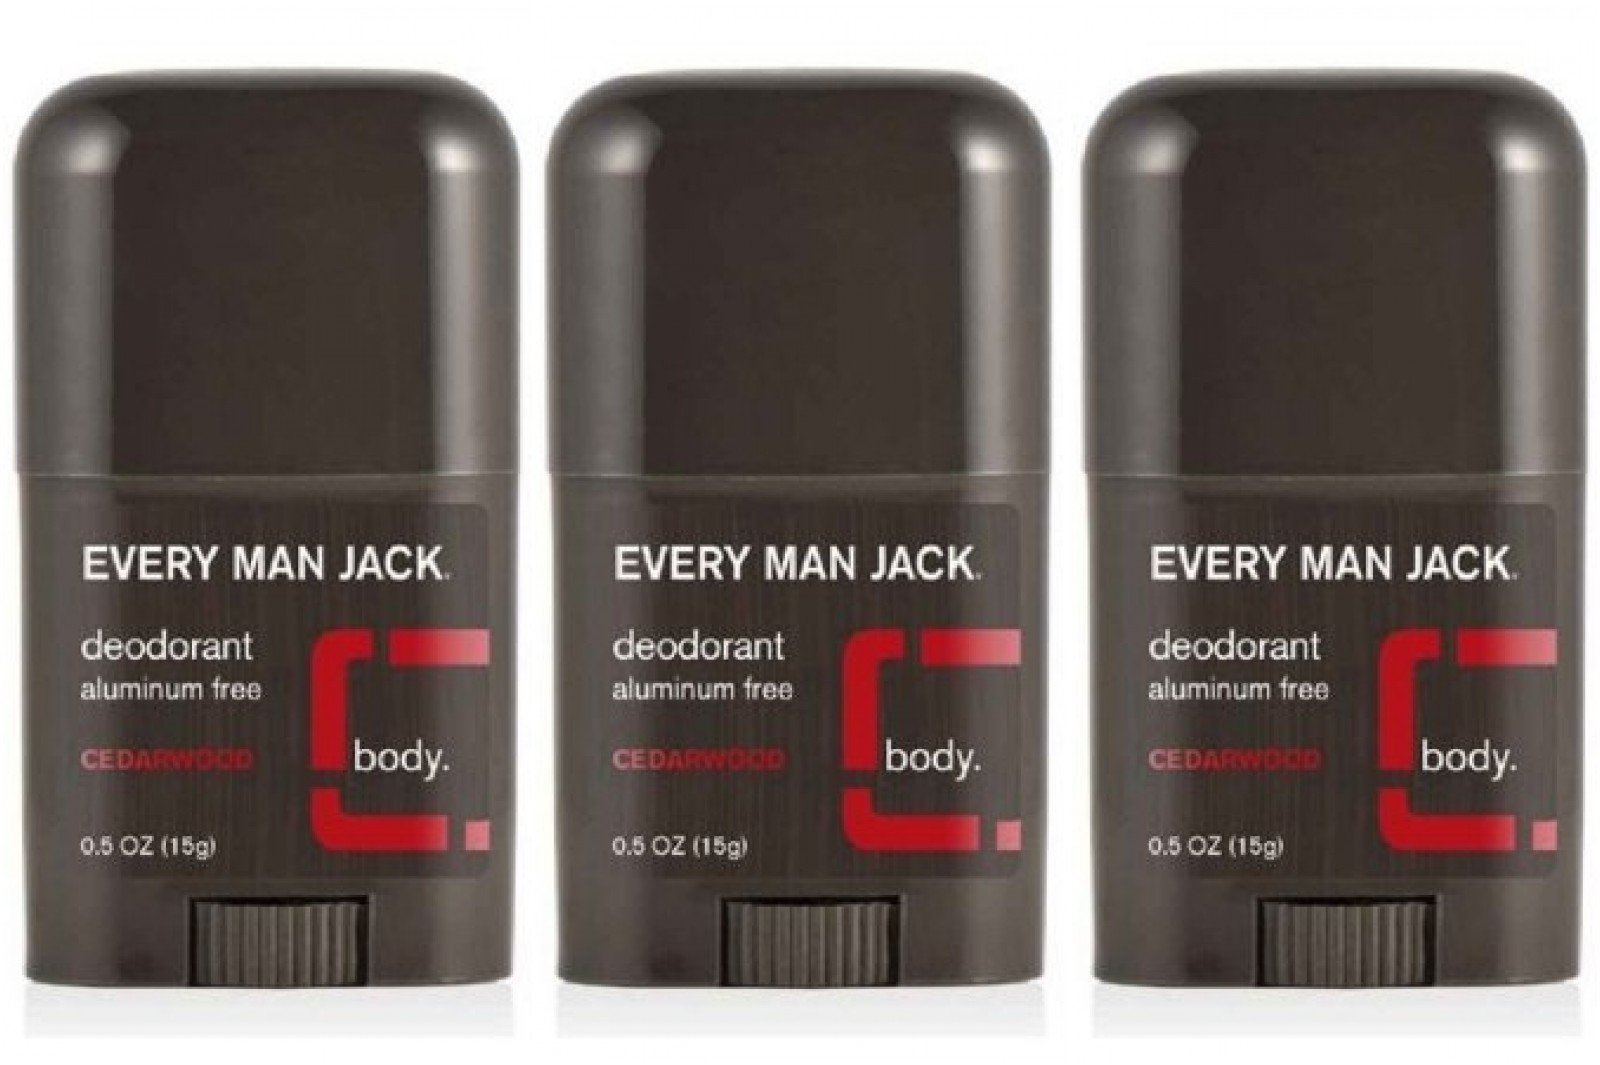 Every Man Jack Deodorant Cedarwood 0.5 Oz Travel Size ((Pack of 3))